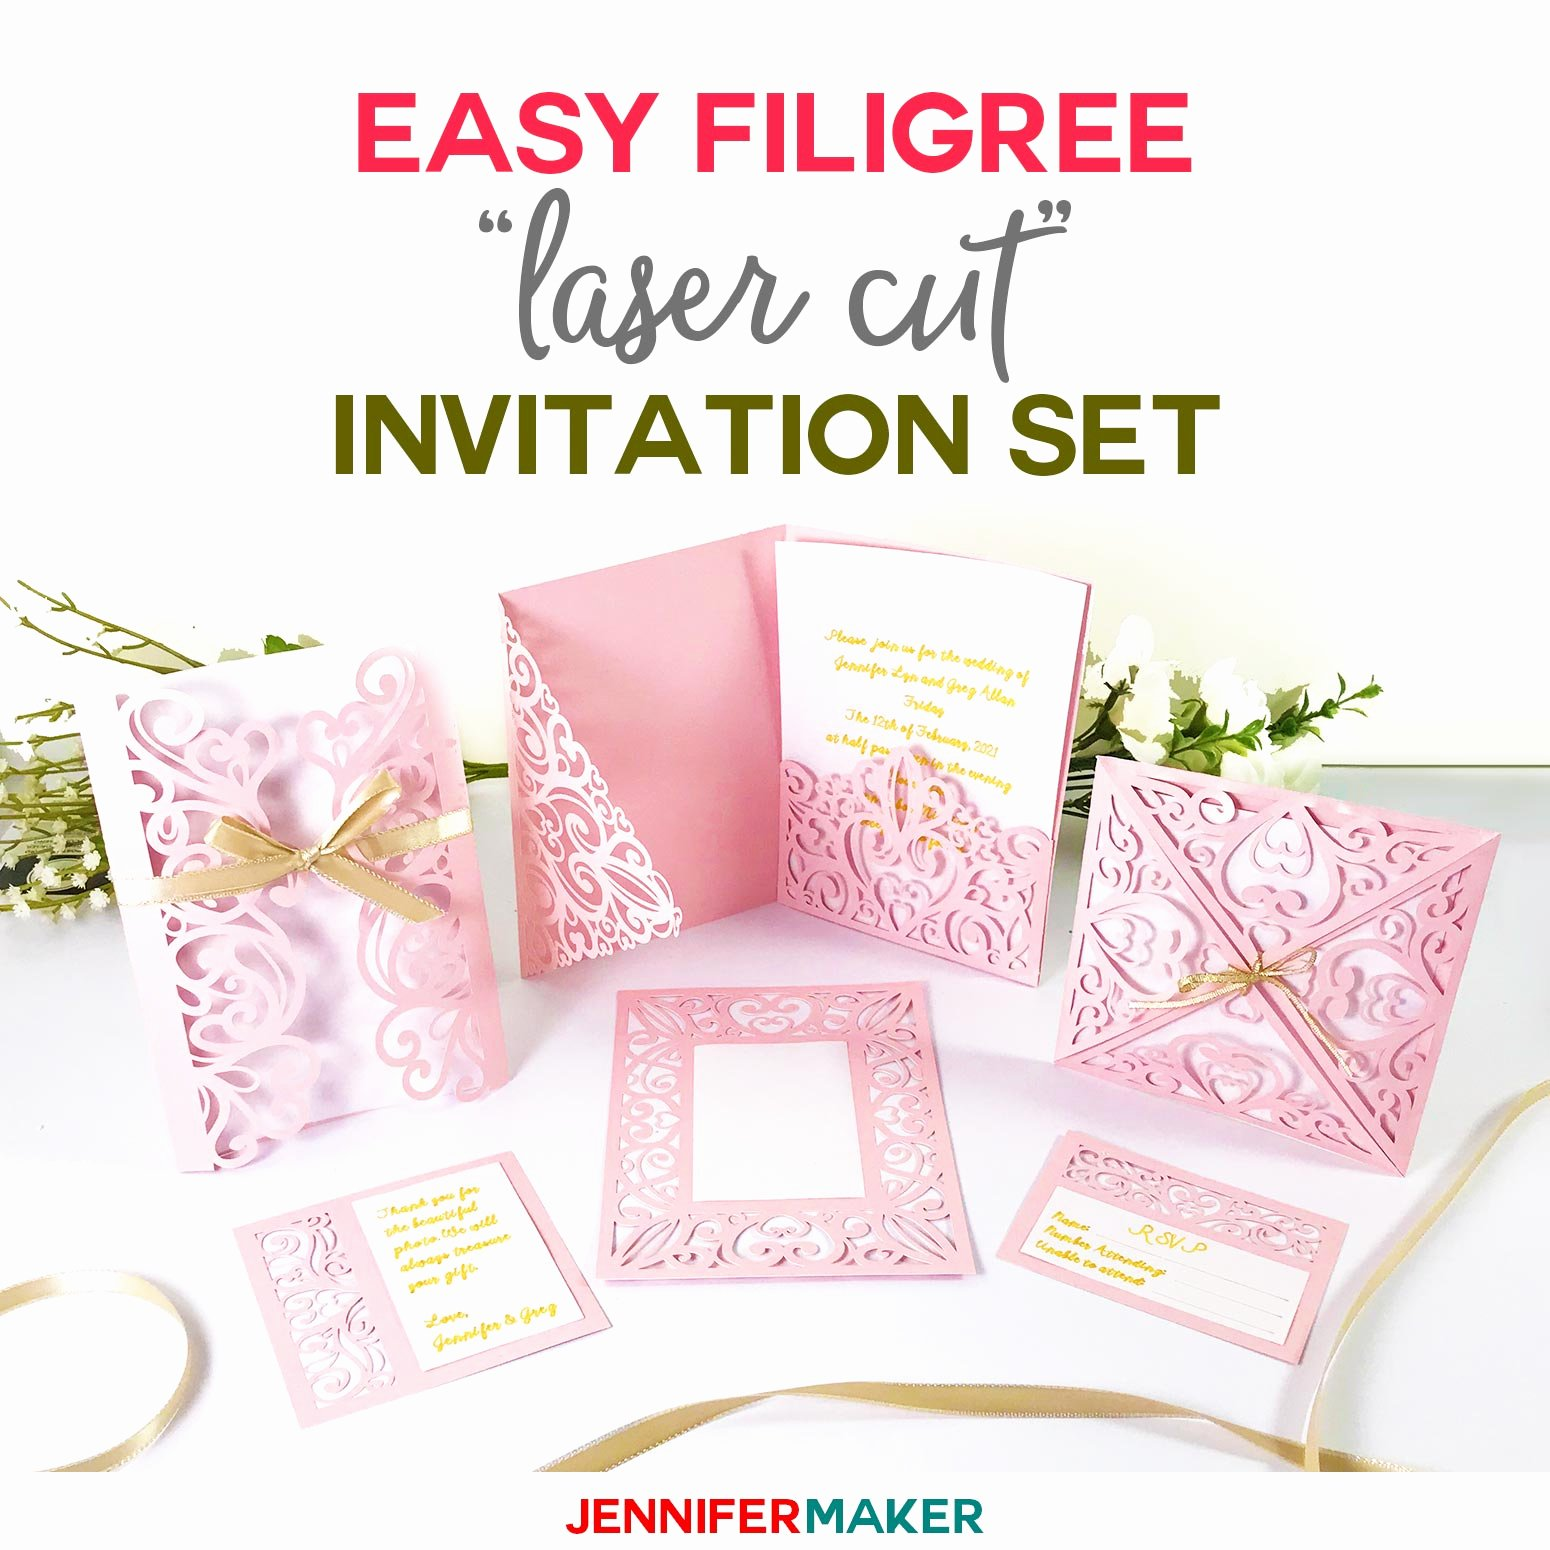 "Free Wedding Invitation Template Inspirational Diy Wedding Invitation Templates Free ""laser Cut"" Set"